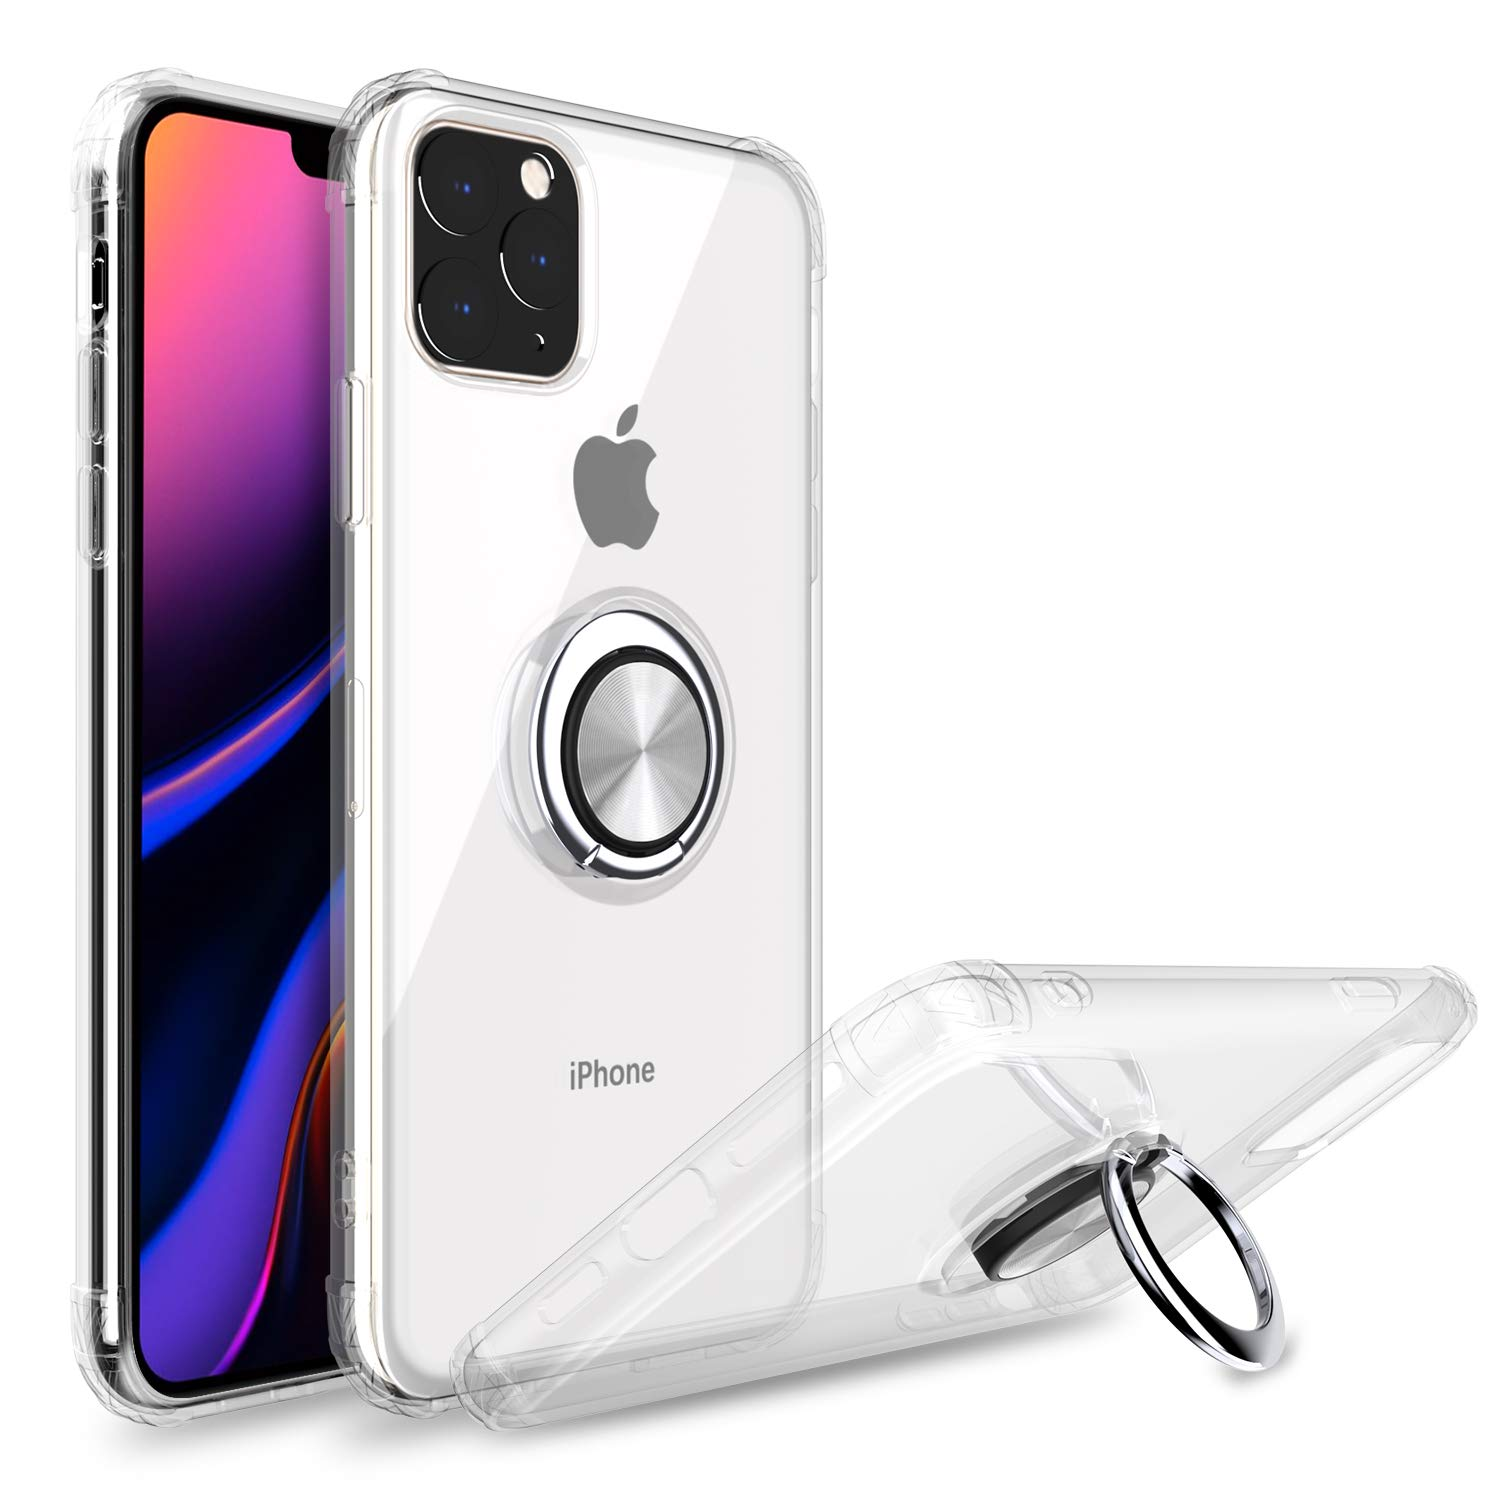 Funda Iphone 11 Pro Con Pie YUNERZ [7WYYD3M6]